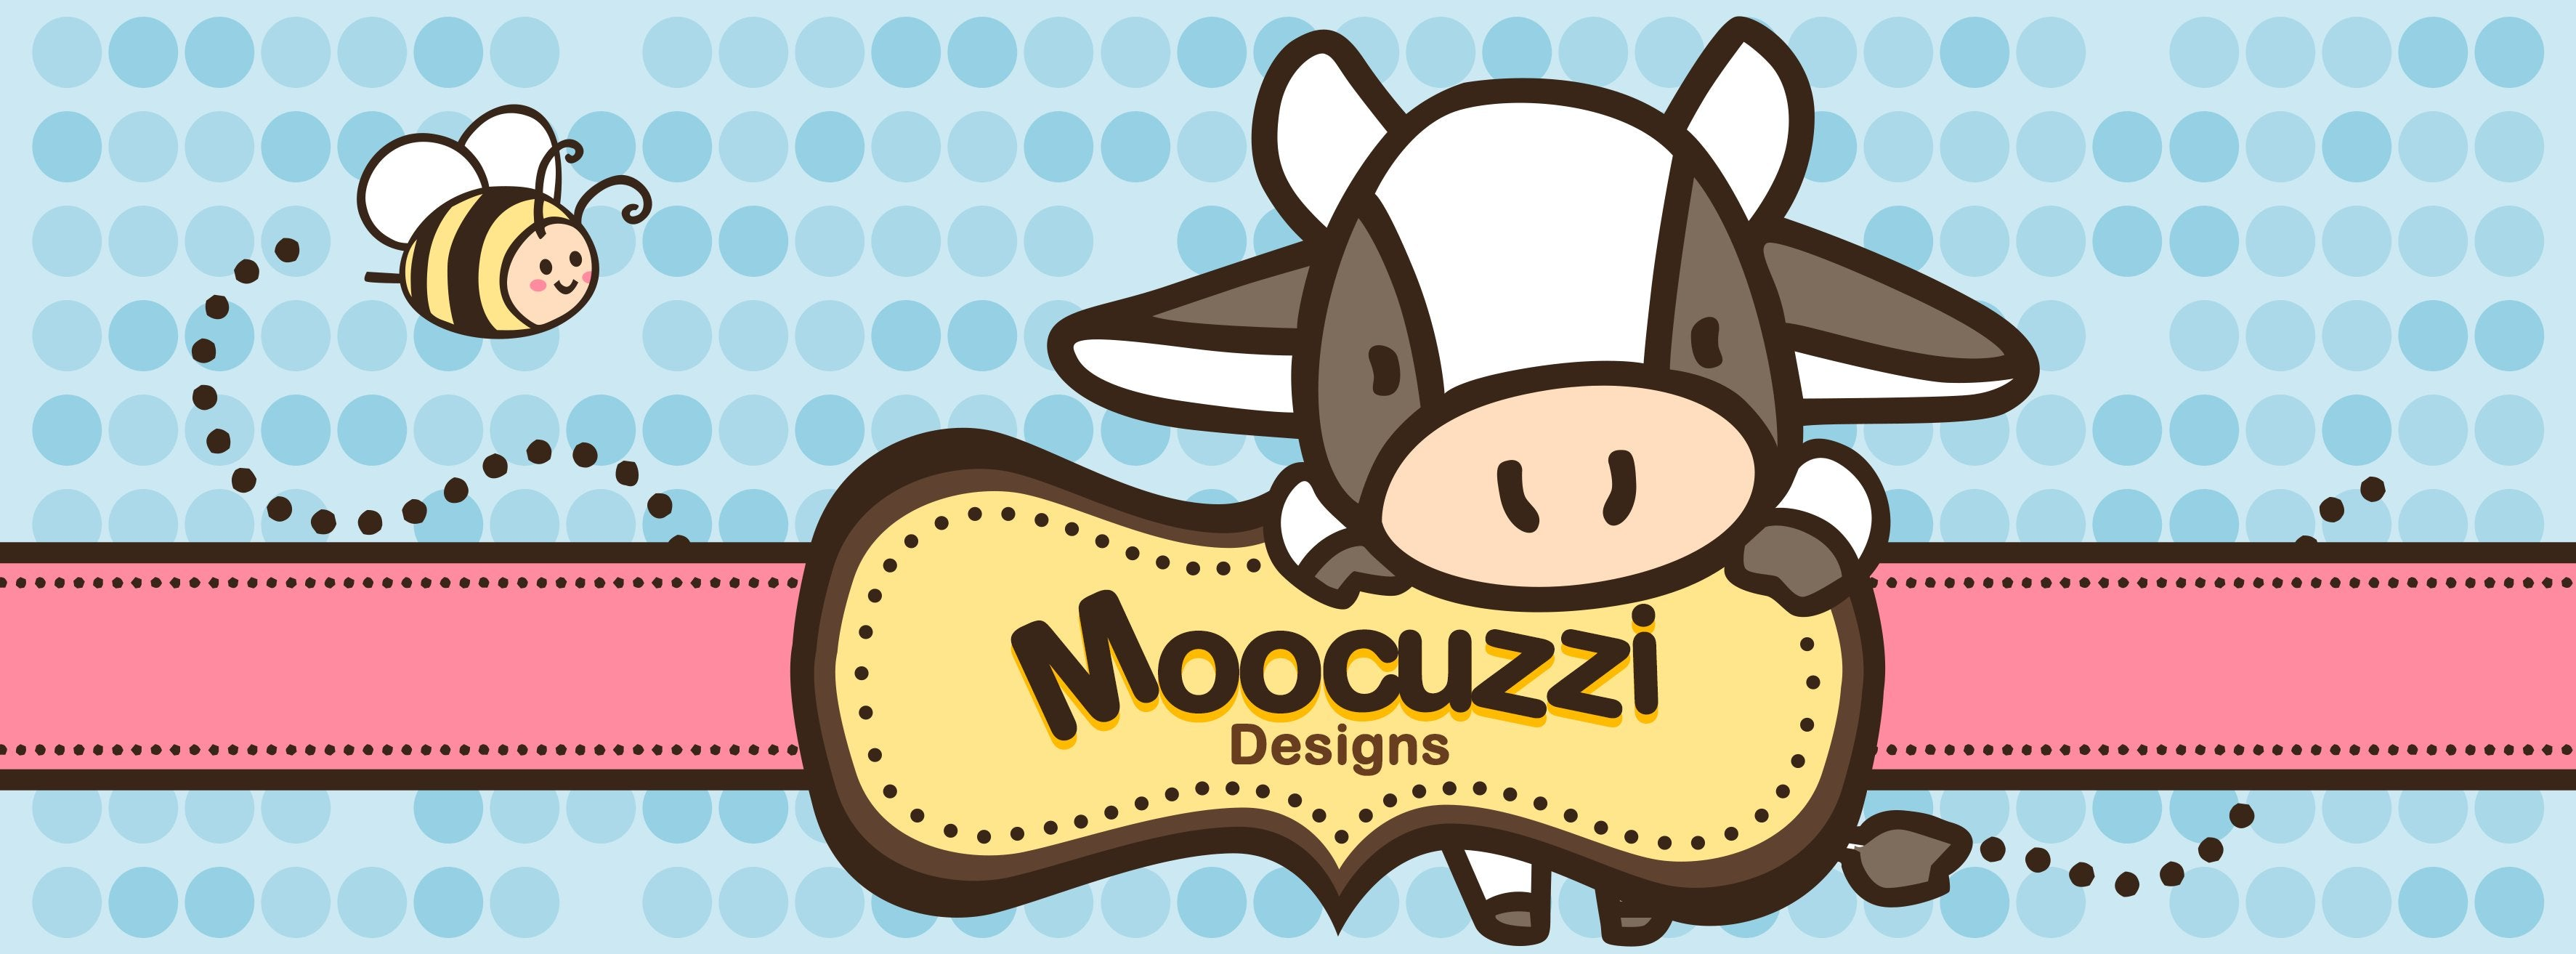 Moocuzzi Designs - PDF Patterns & Handmade Clothes